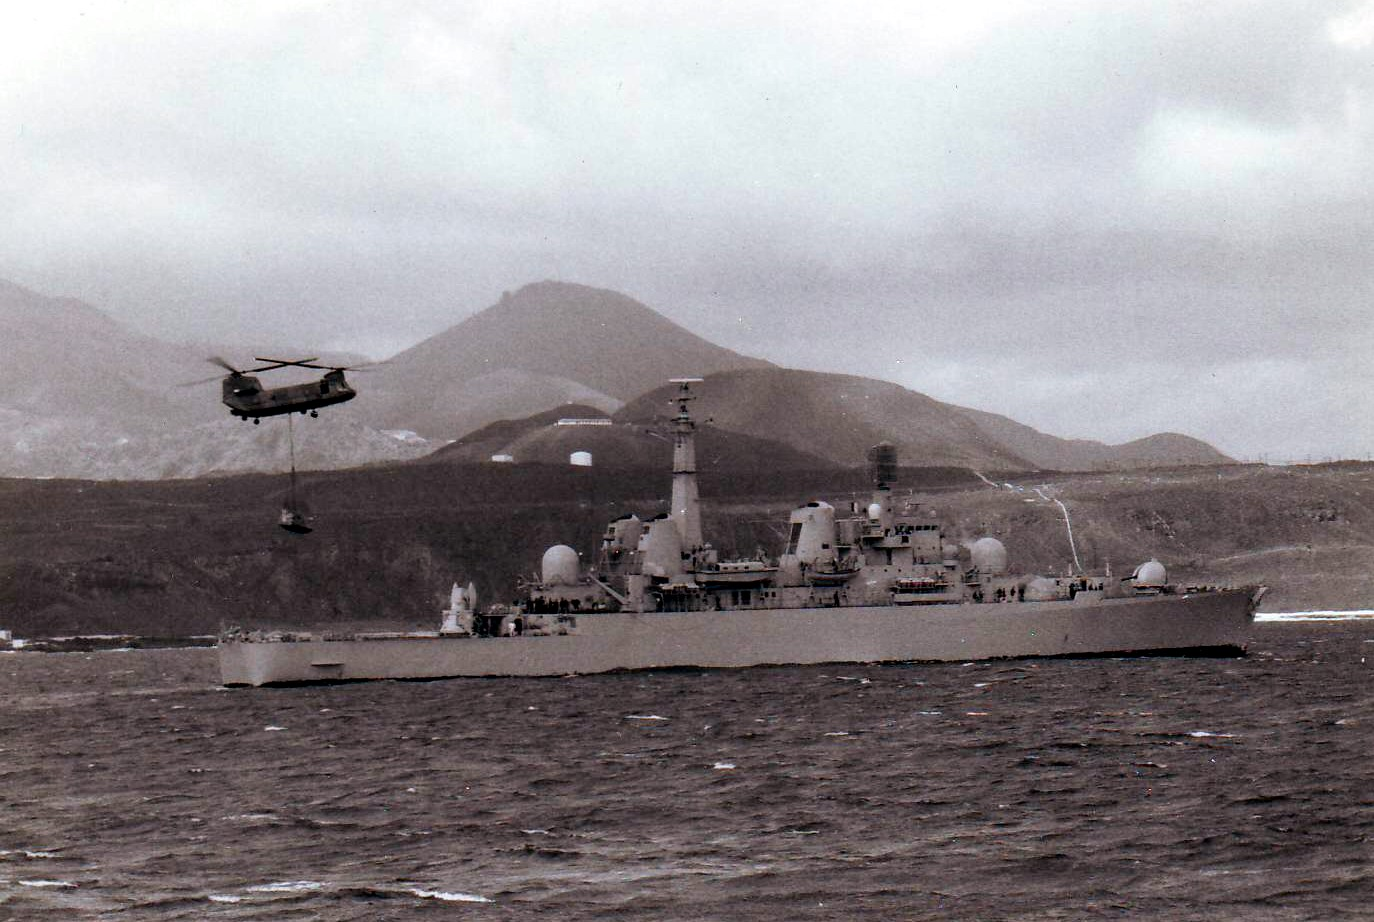 HMS Bristol storing war supplies at Ascension Island, May 18, 1982.